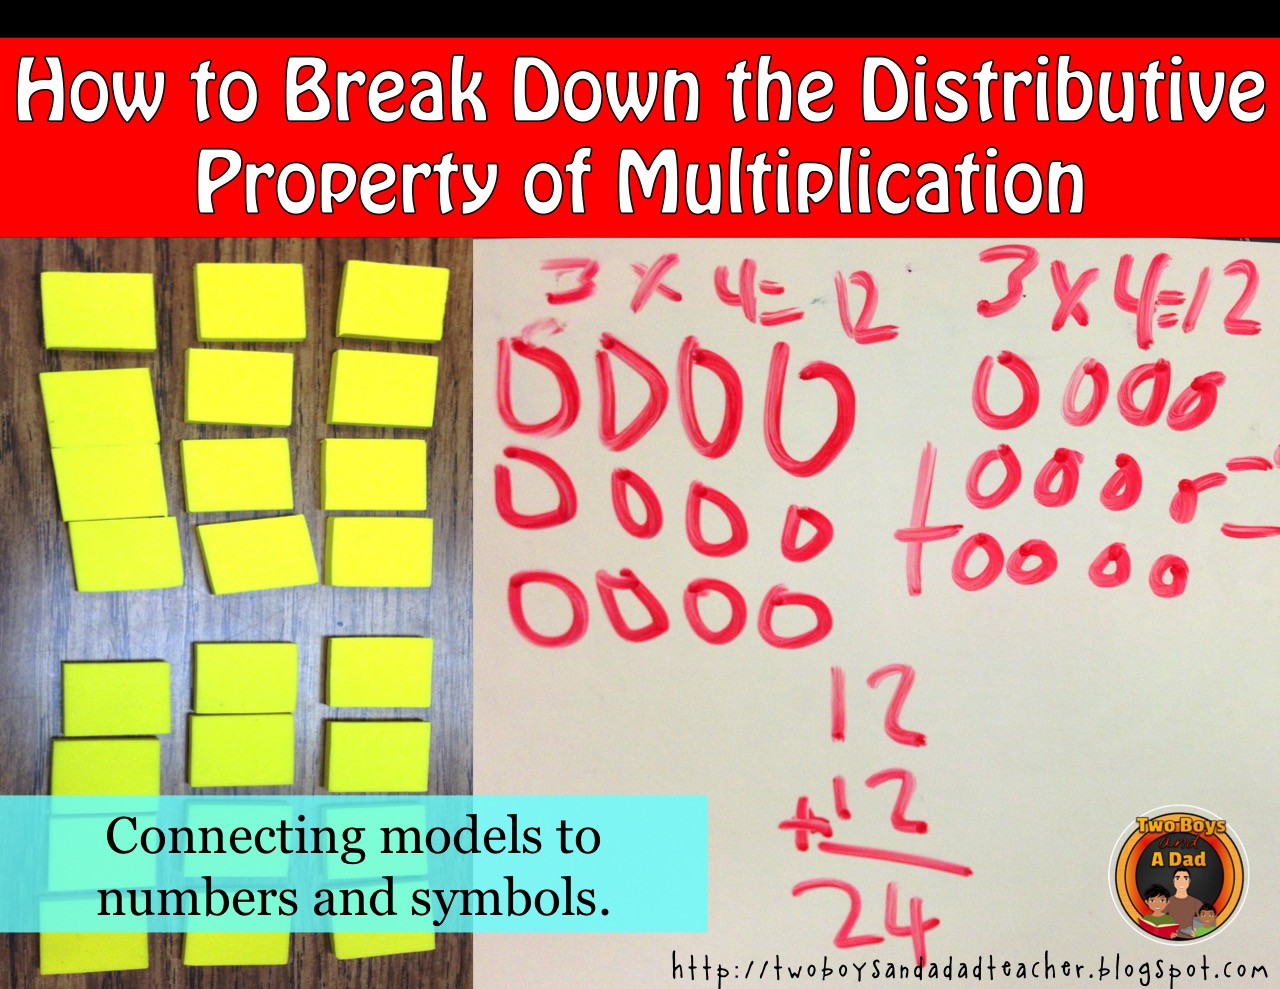 connecting models to numbers and symbols